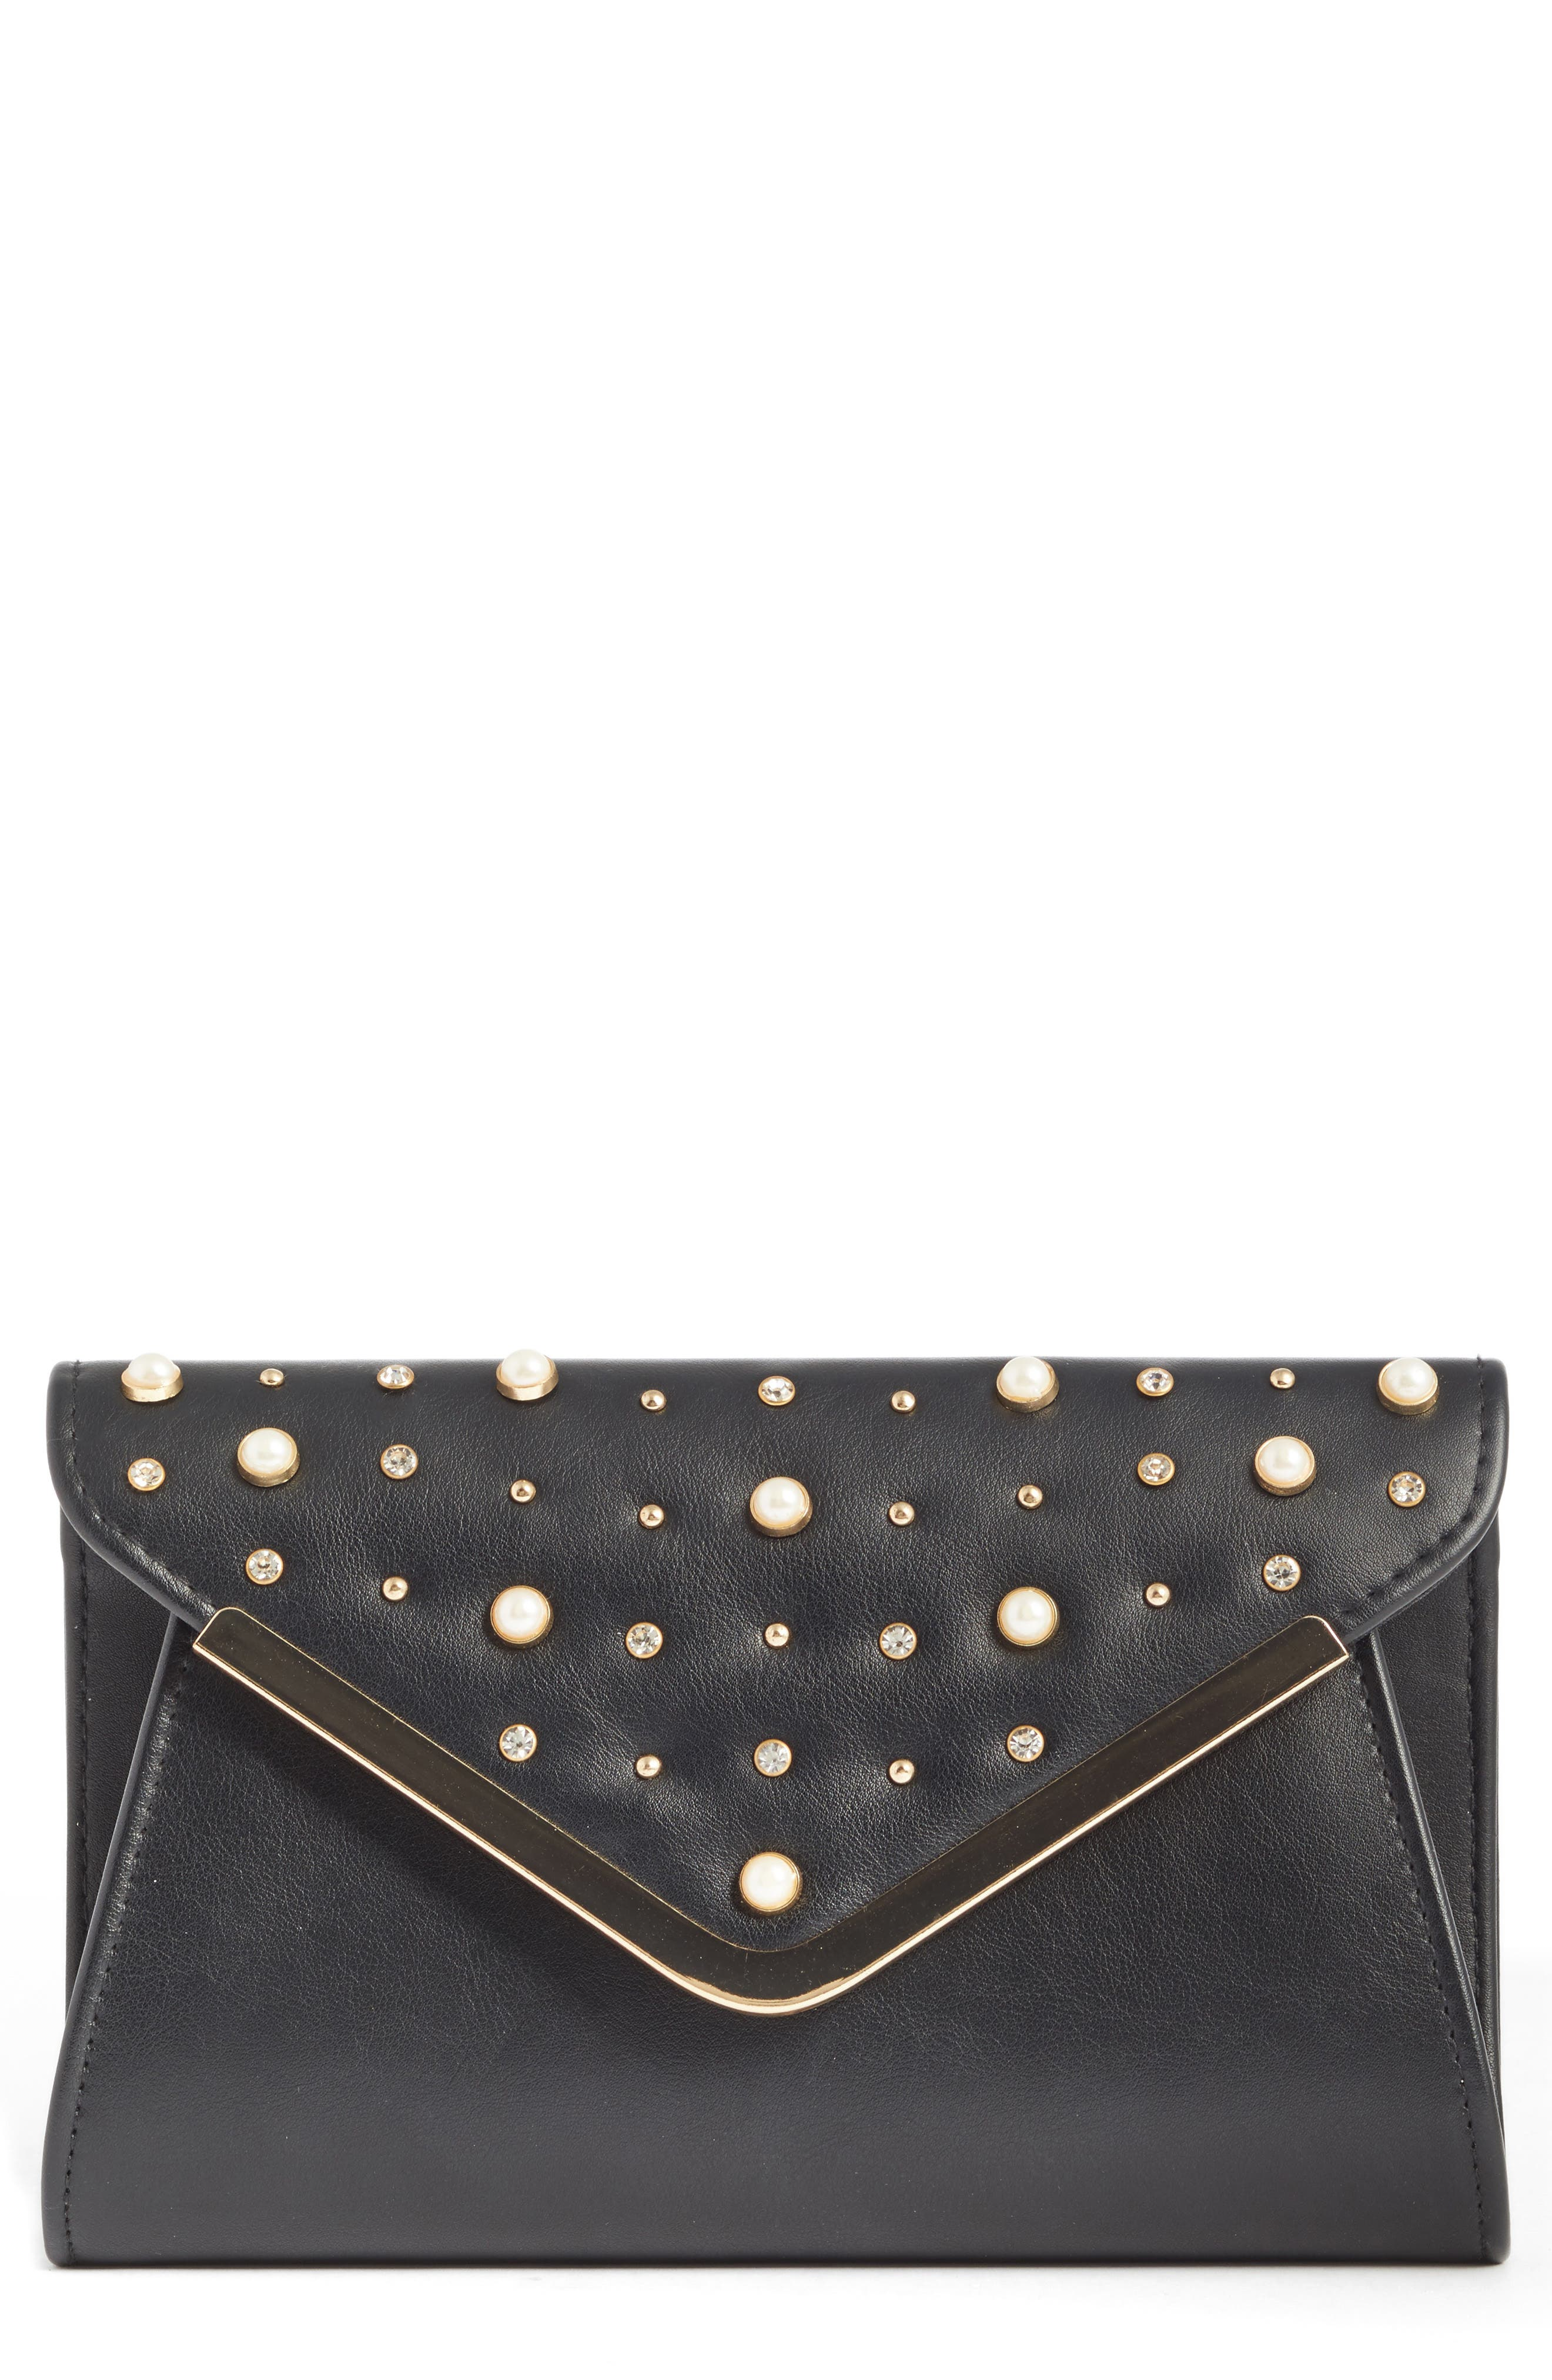 BP. Studded Faux Leather Clutch